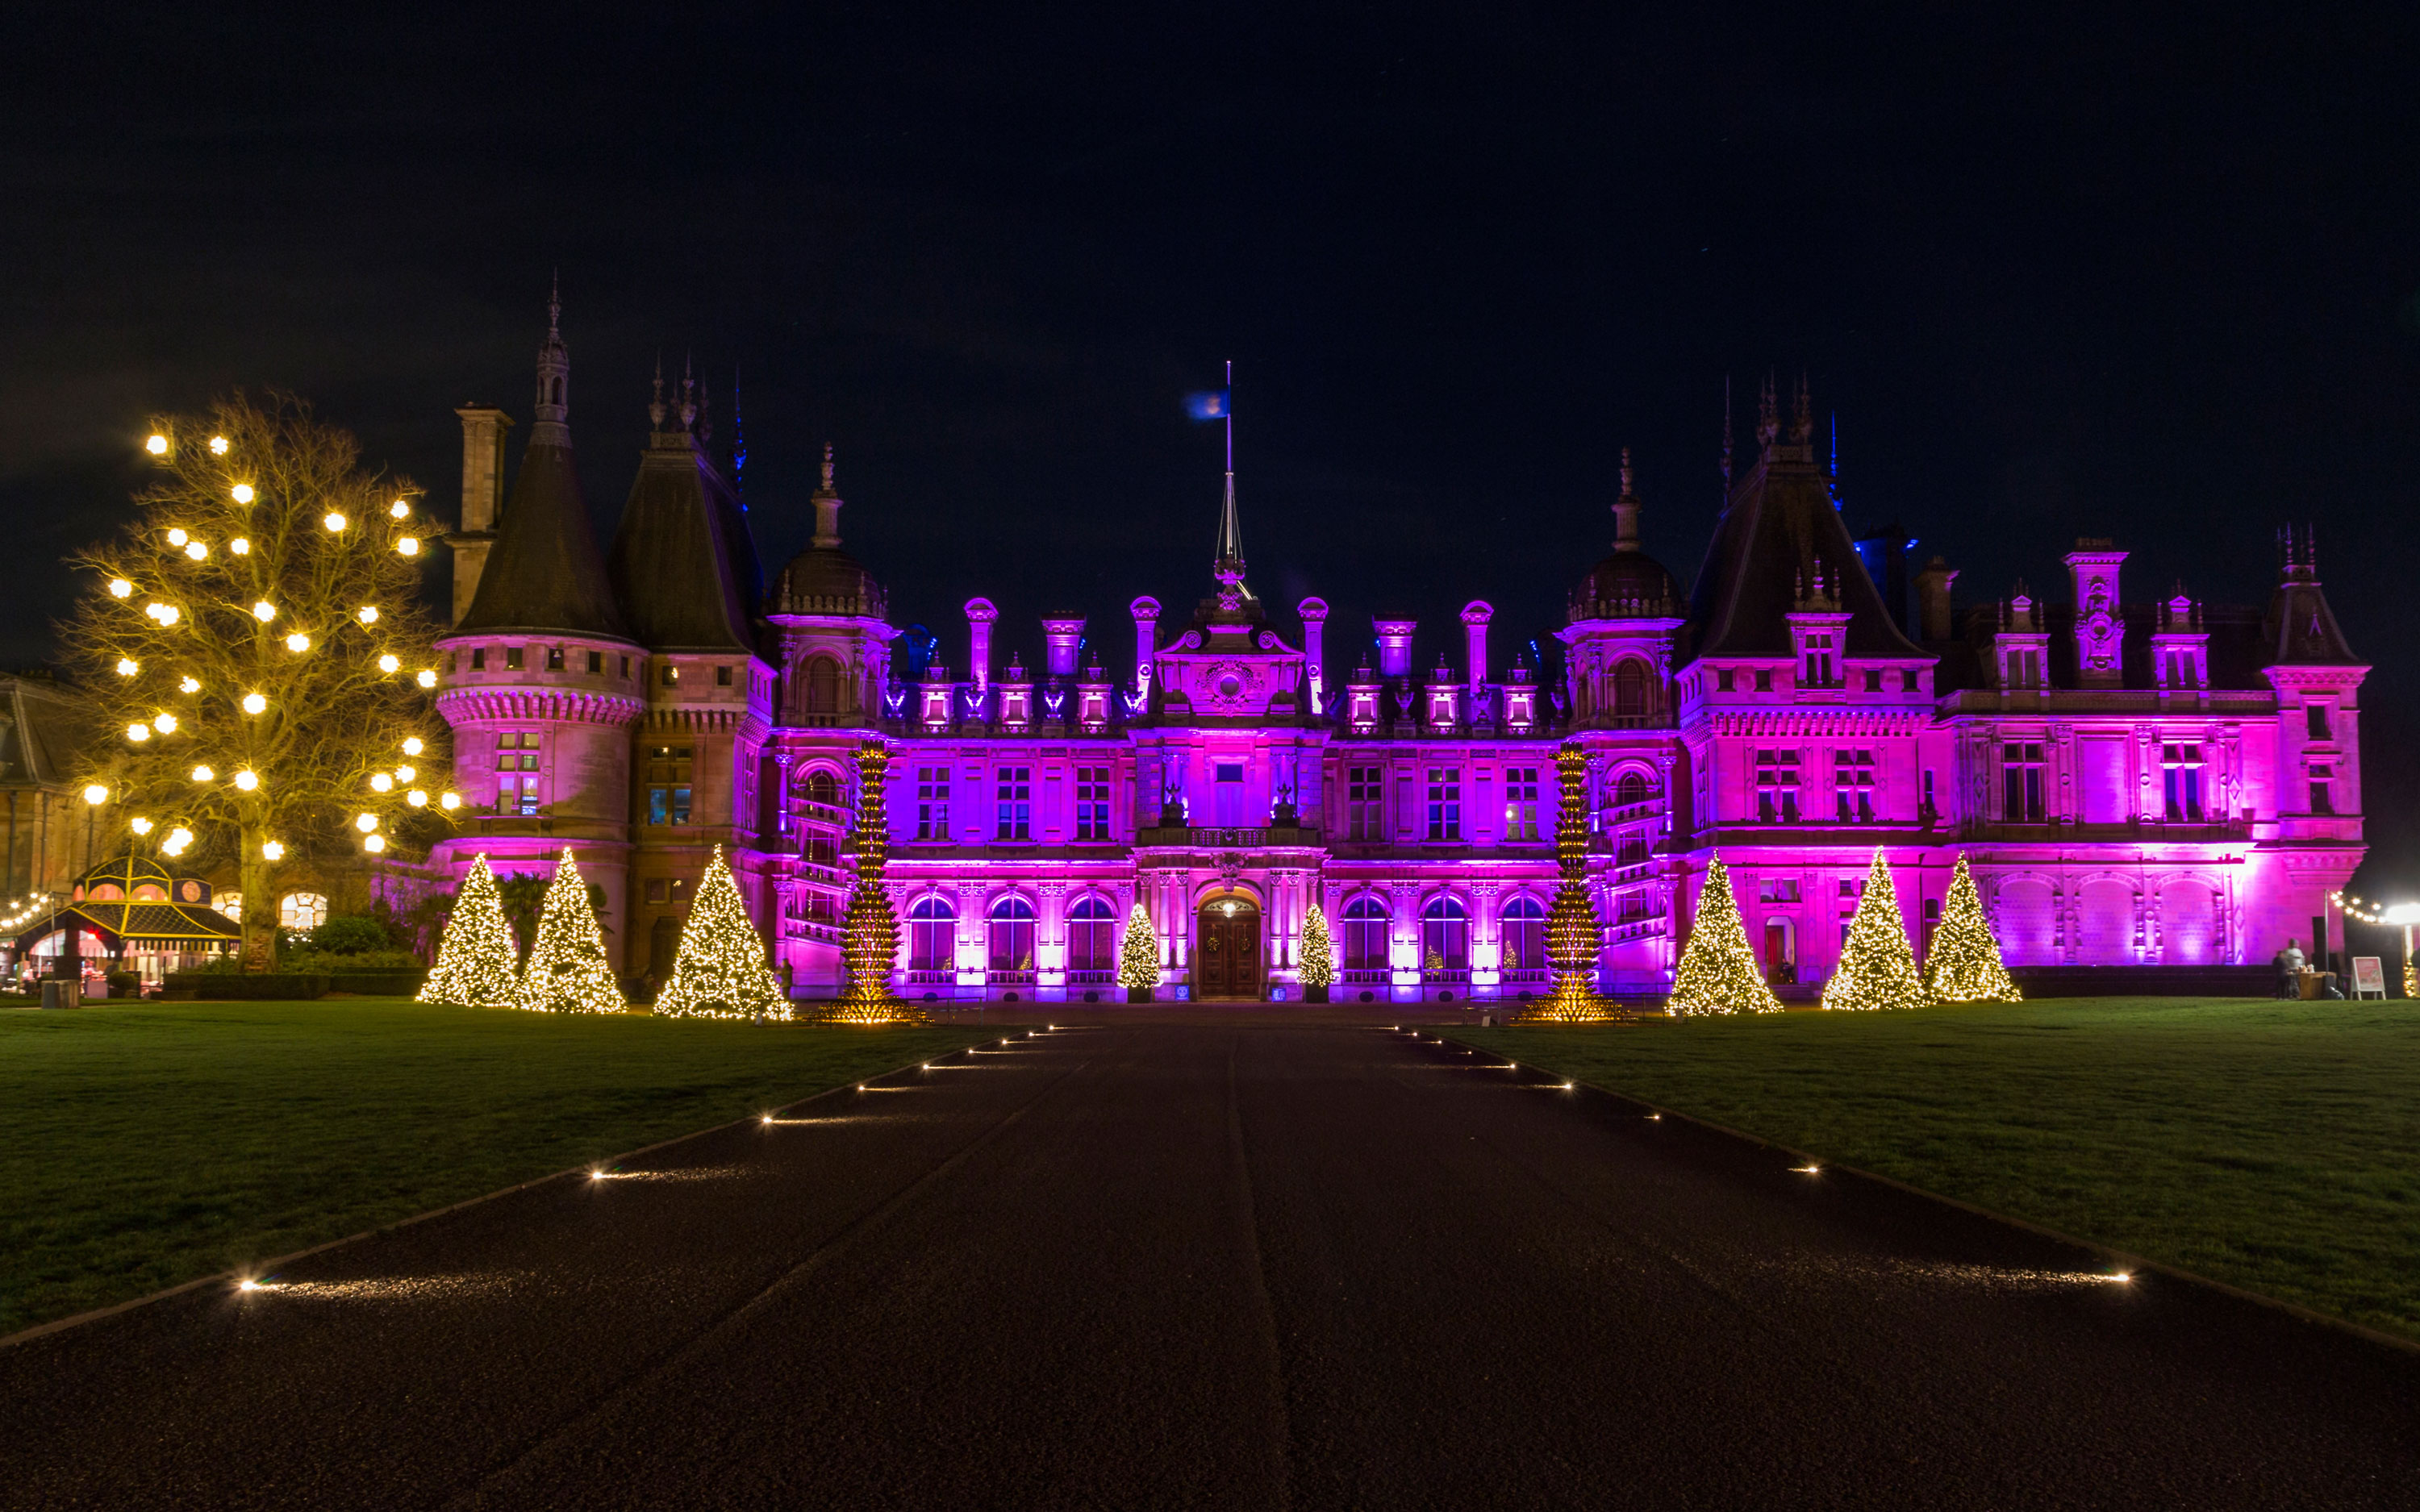 Waddesdon manor illuminated at christmas